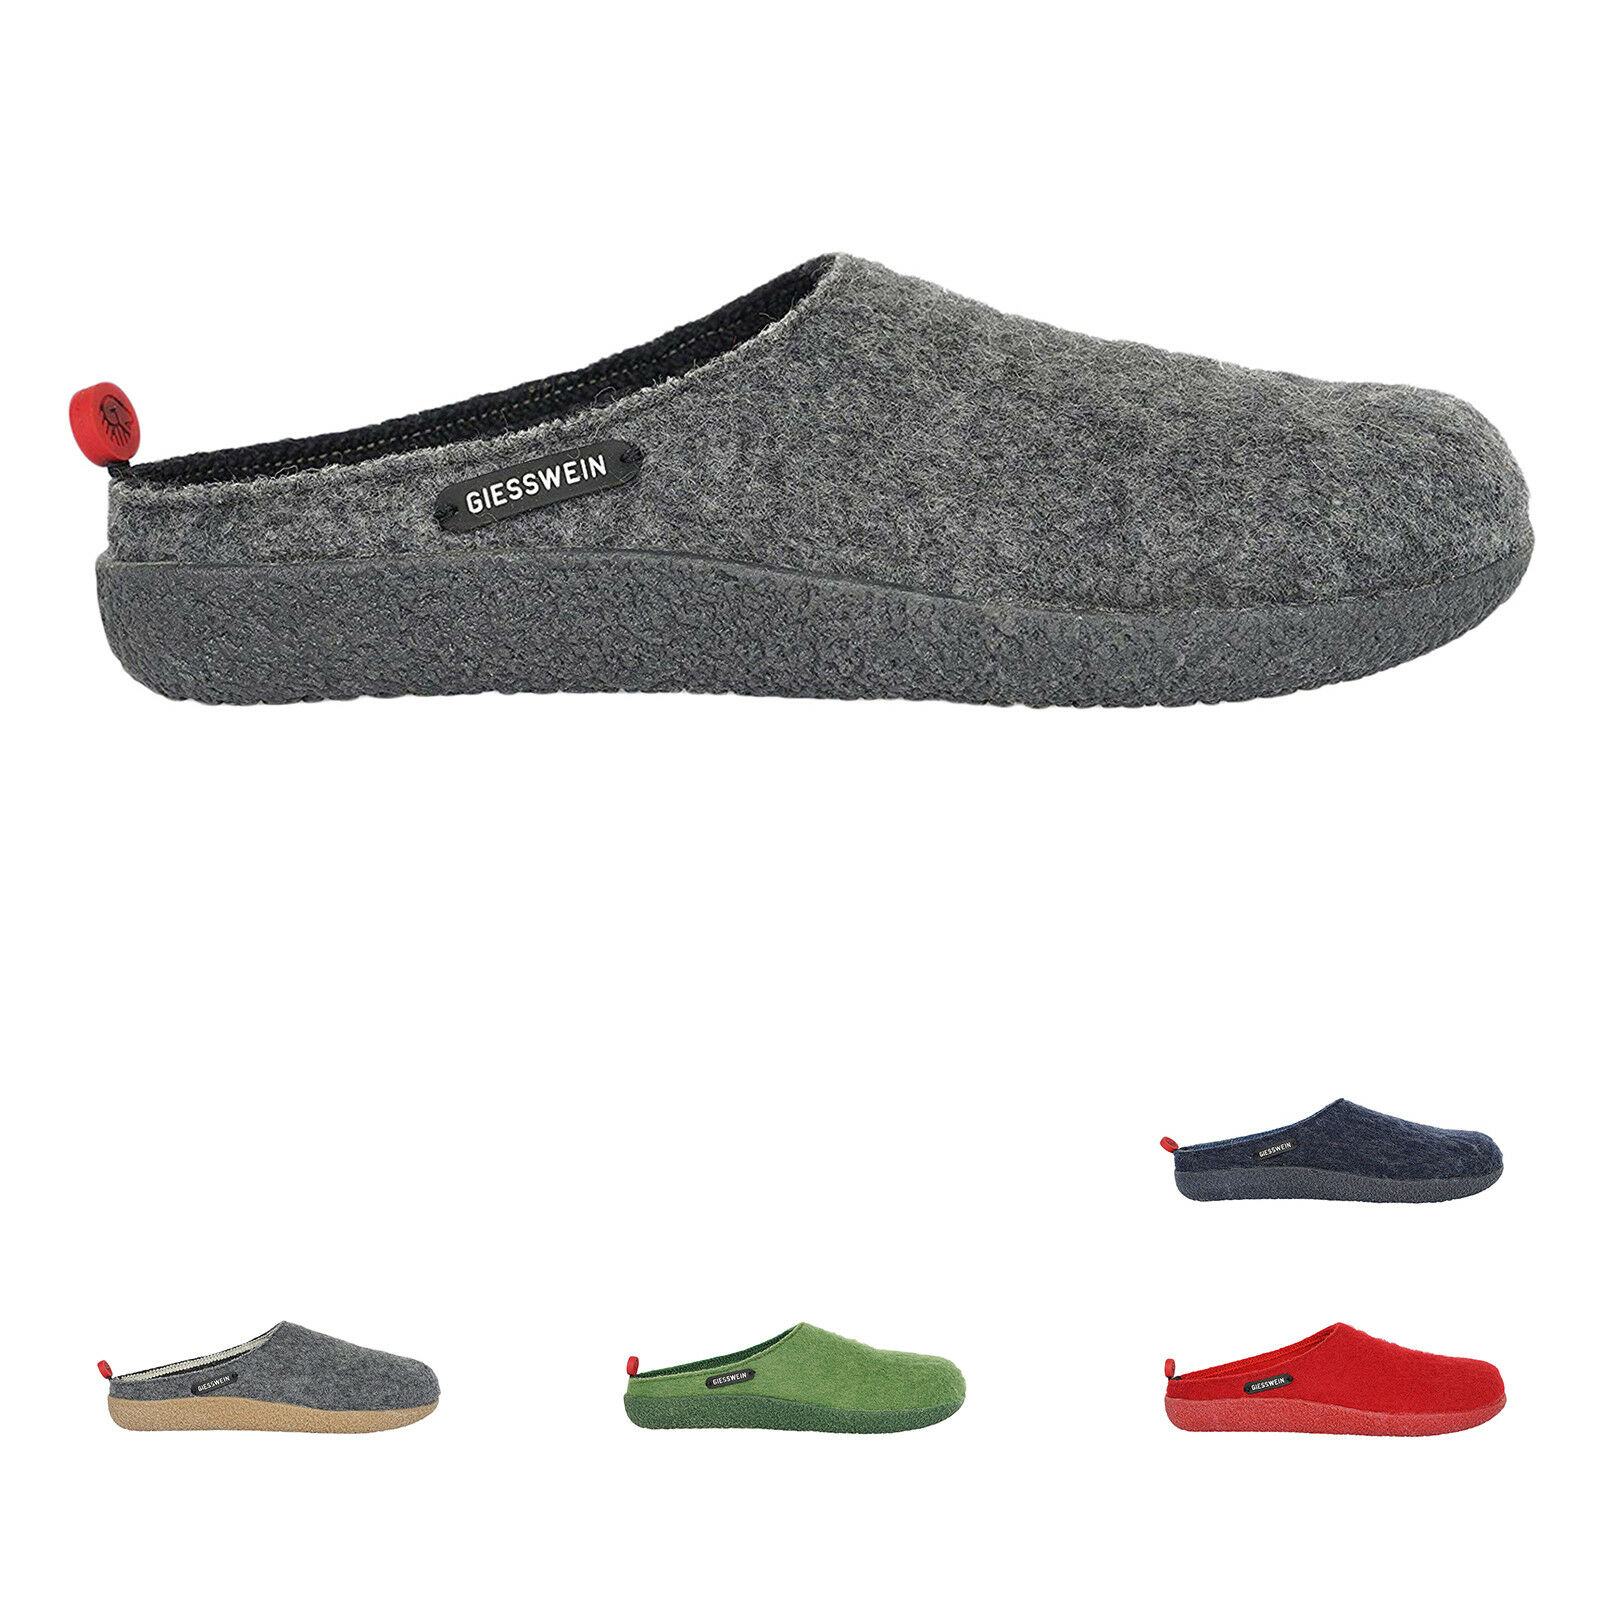 Giesswein vorbach laine SLIP-ON Open-Back Sabots Chaussons Chaussures Femme Sandales